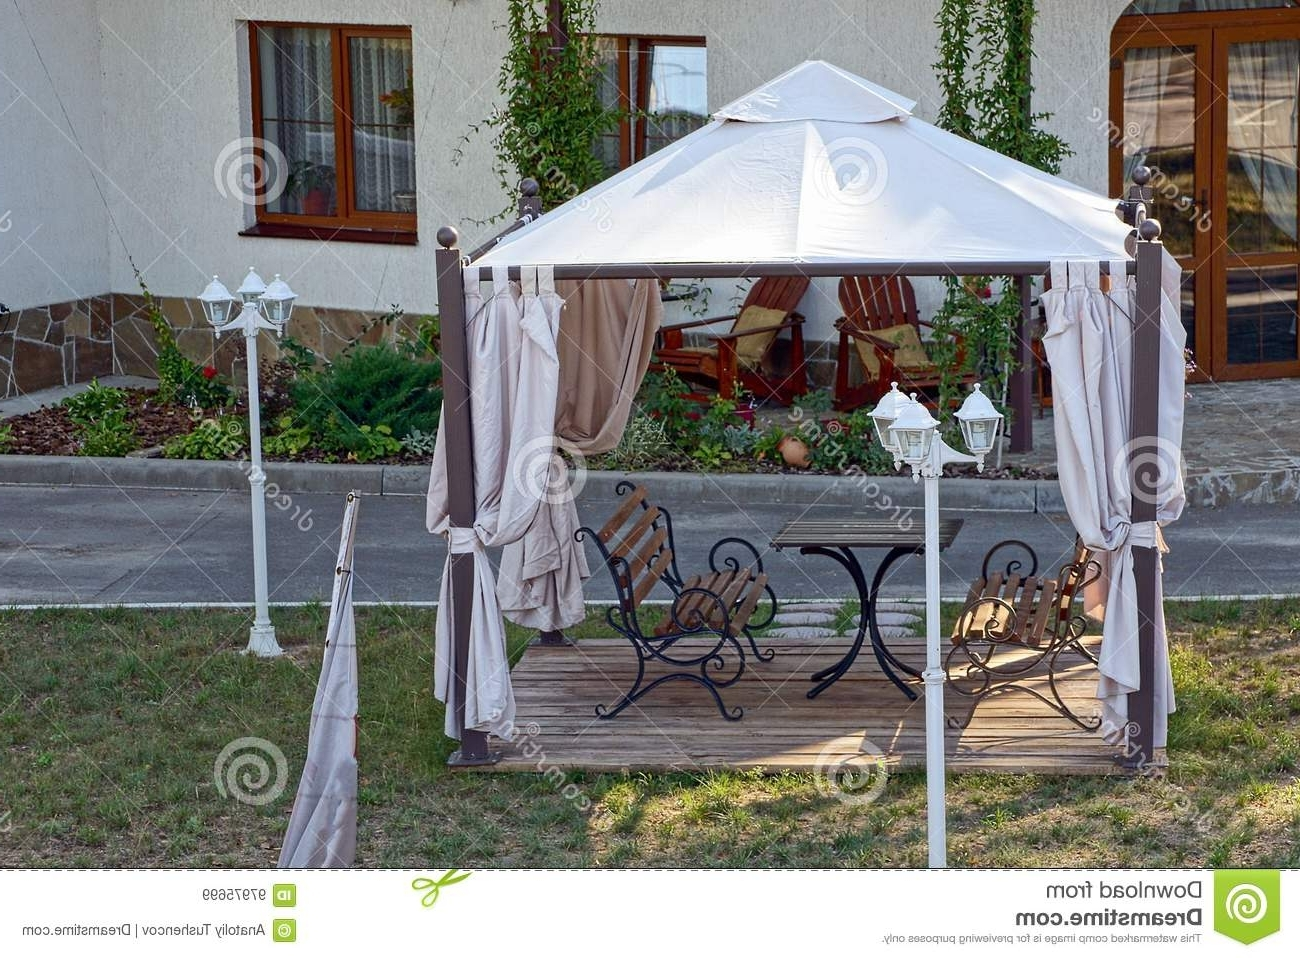 Well Known Outdoor Gazebo Lanterns Pertaining To Open Gazebo With Benches On The Lawn With Lanterns Near The Road (View 18 of 20)